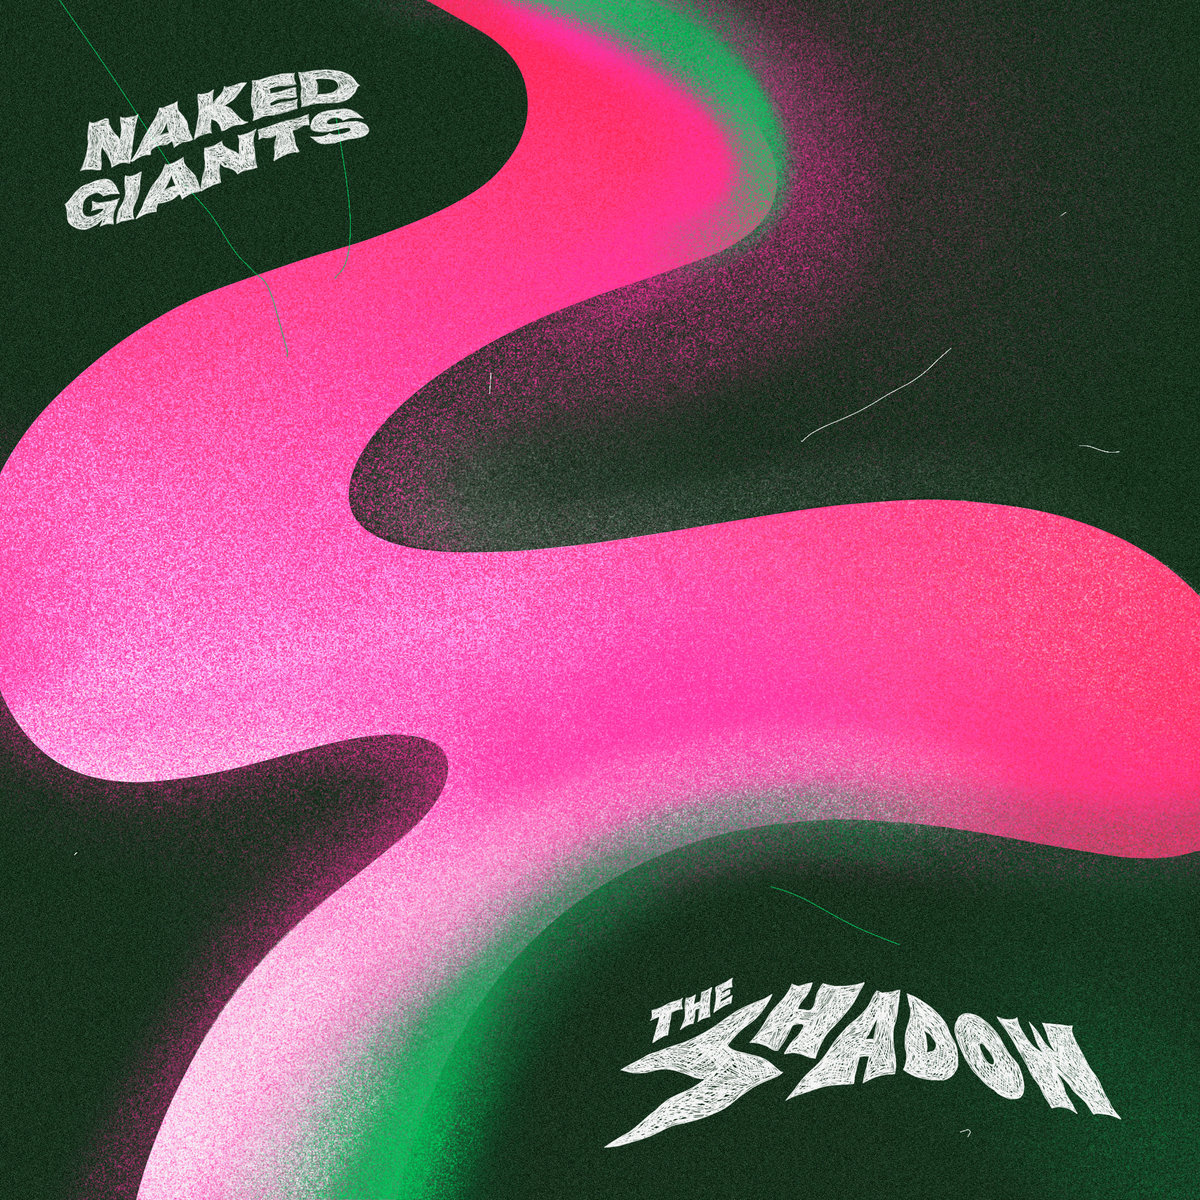 naked giants – the shadow